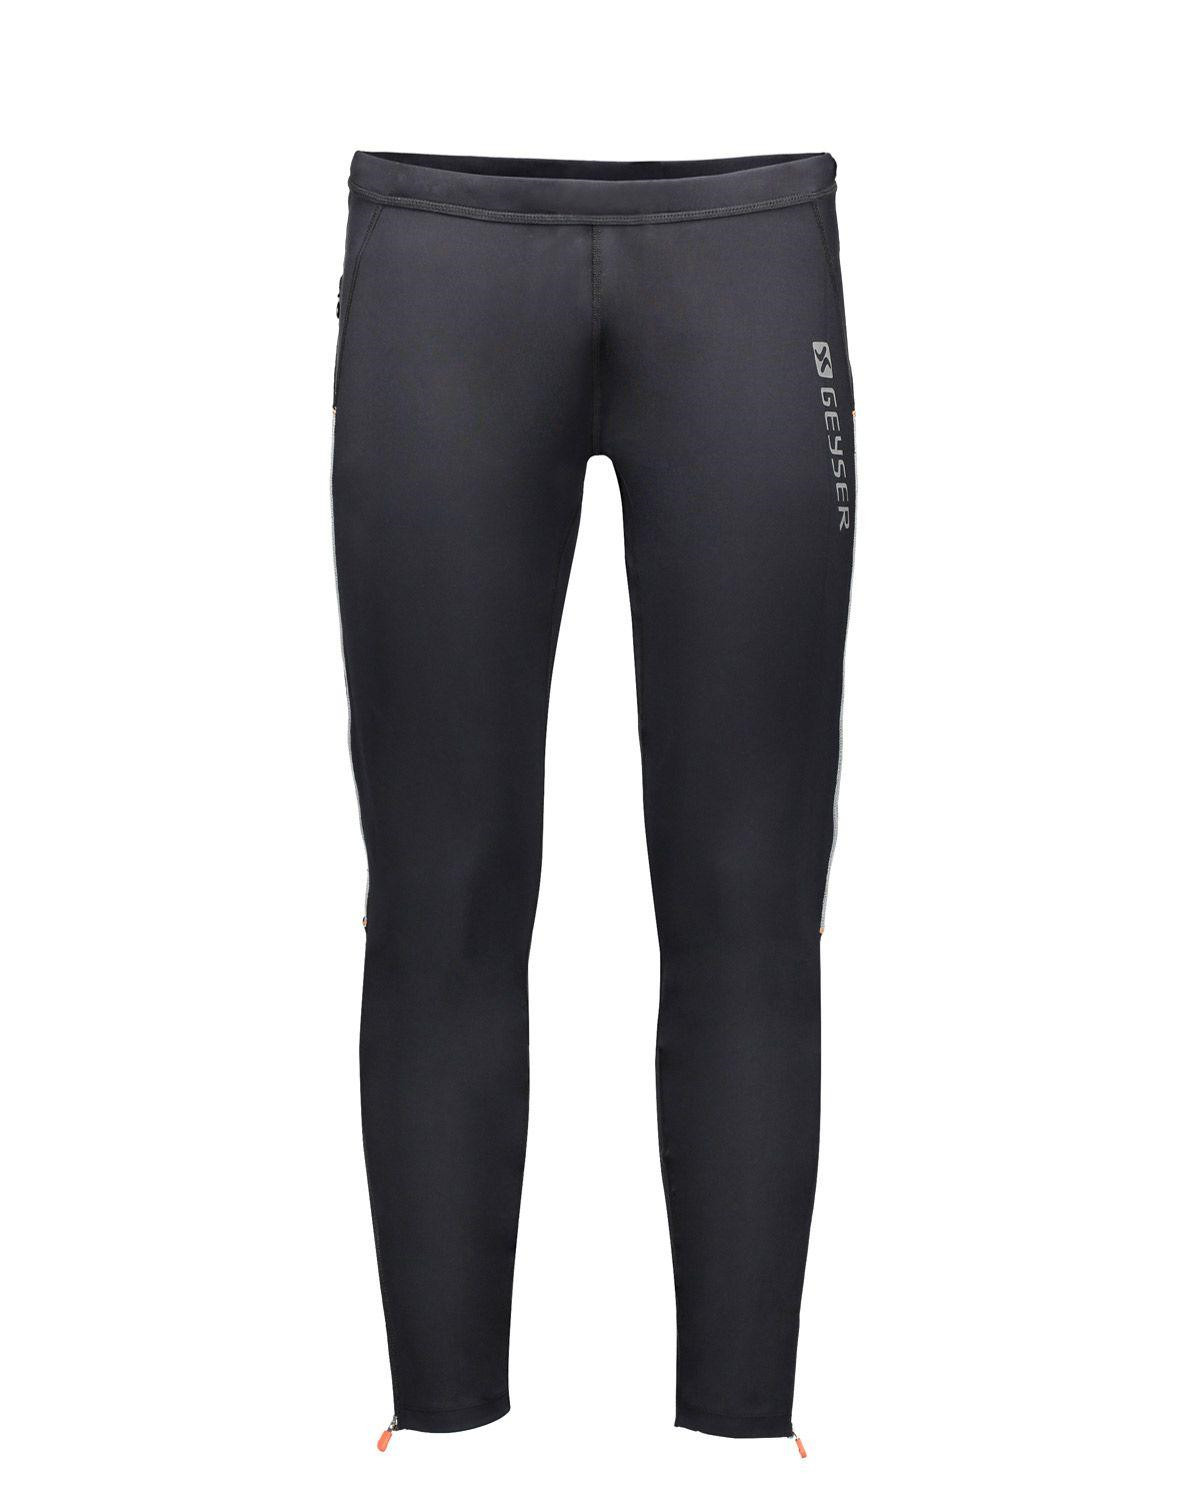 Image of   GEYSER Lange Tights (Sort, S)